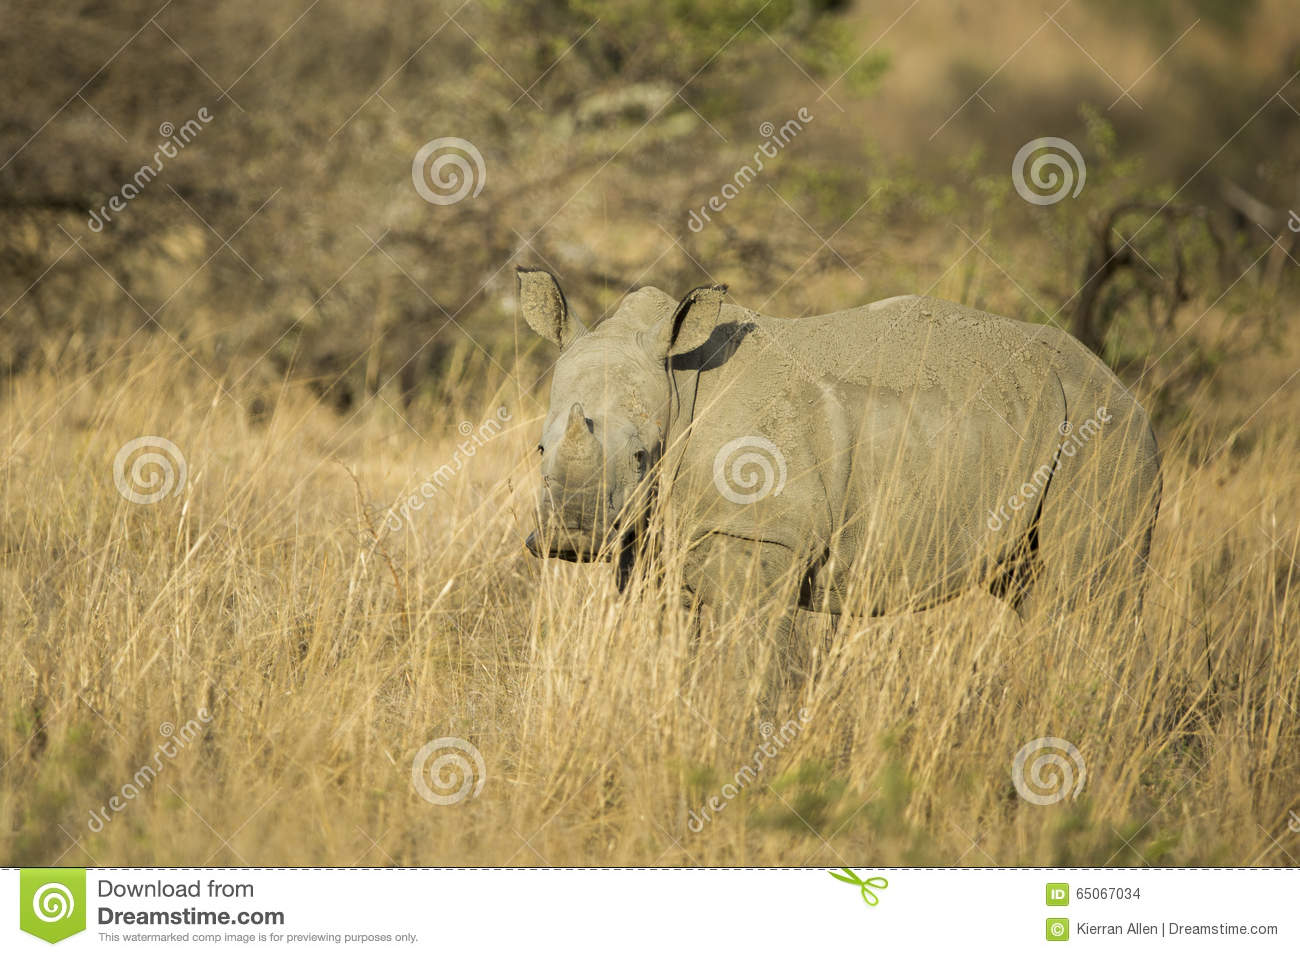 Baby White Rhino in South Africa